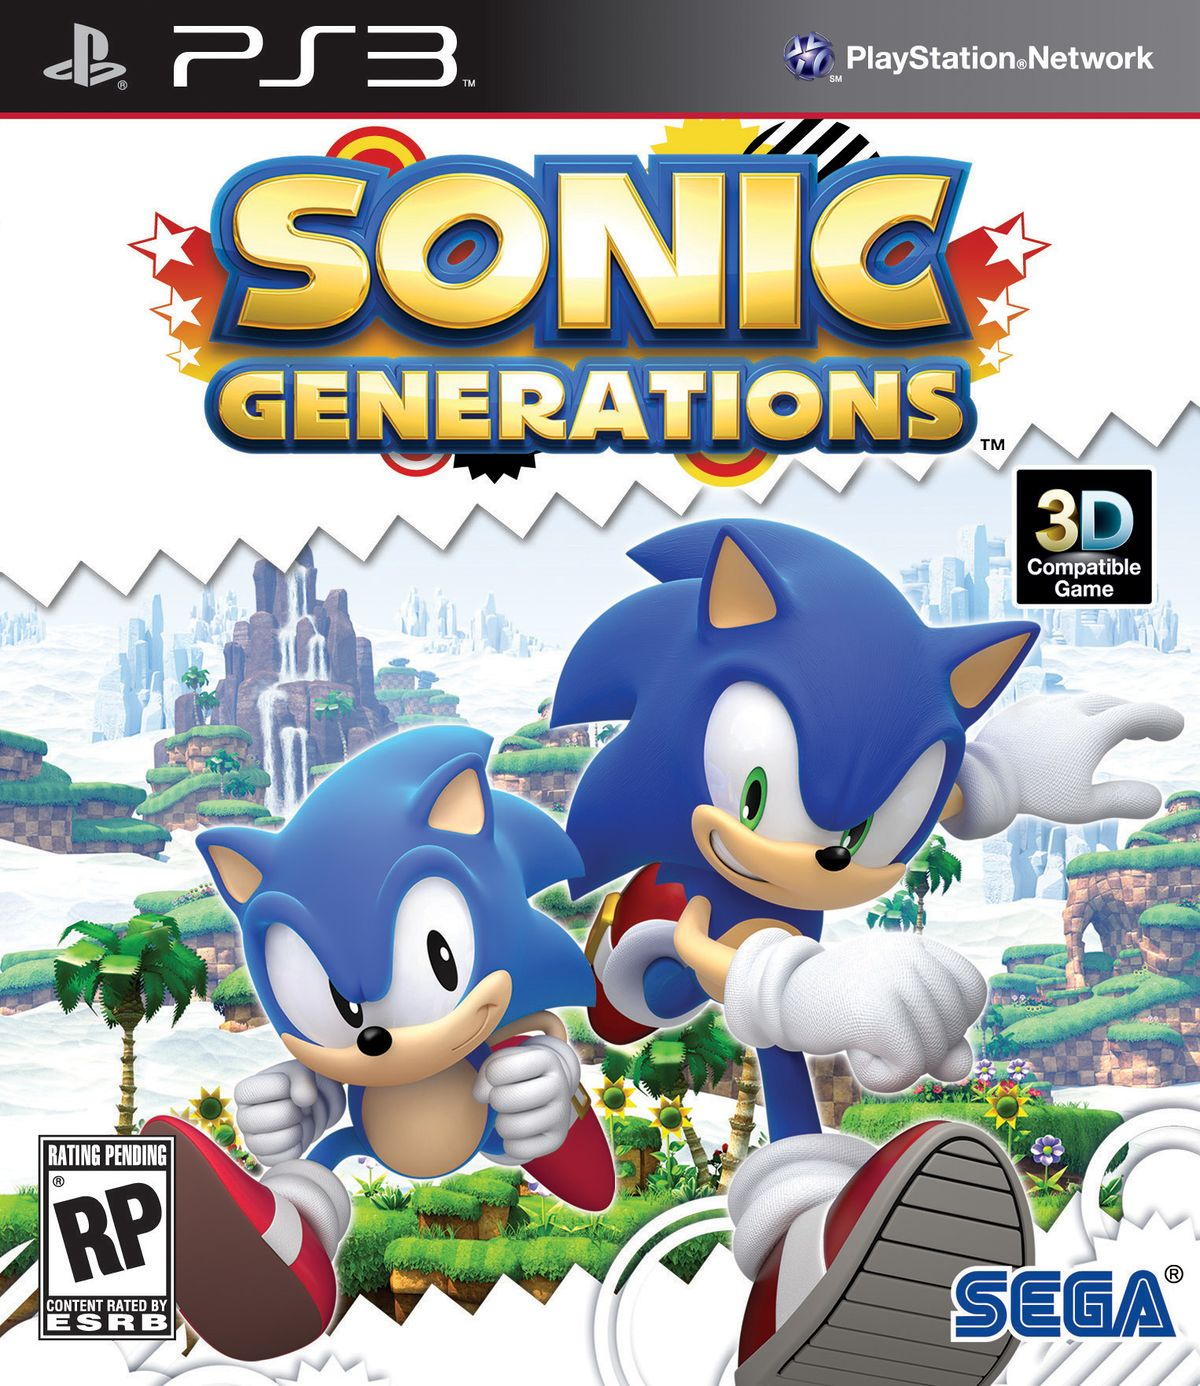 Sonic Generations Strategywiki The Video Game Walkthrough And Strategy Guide Wiki